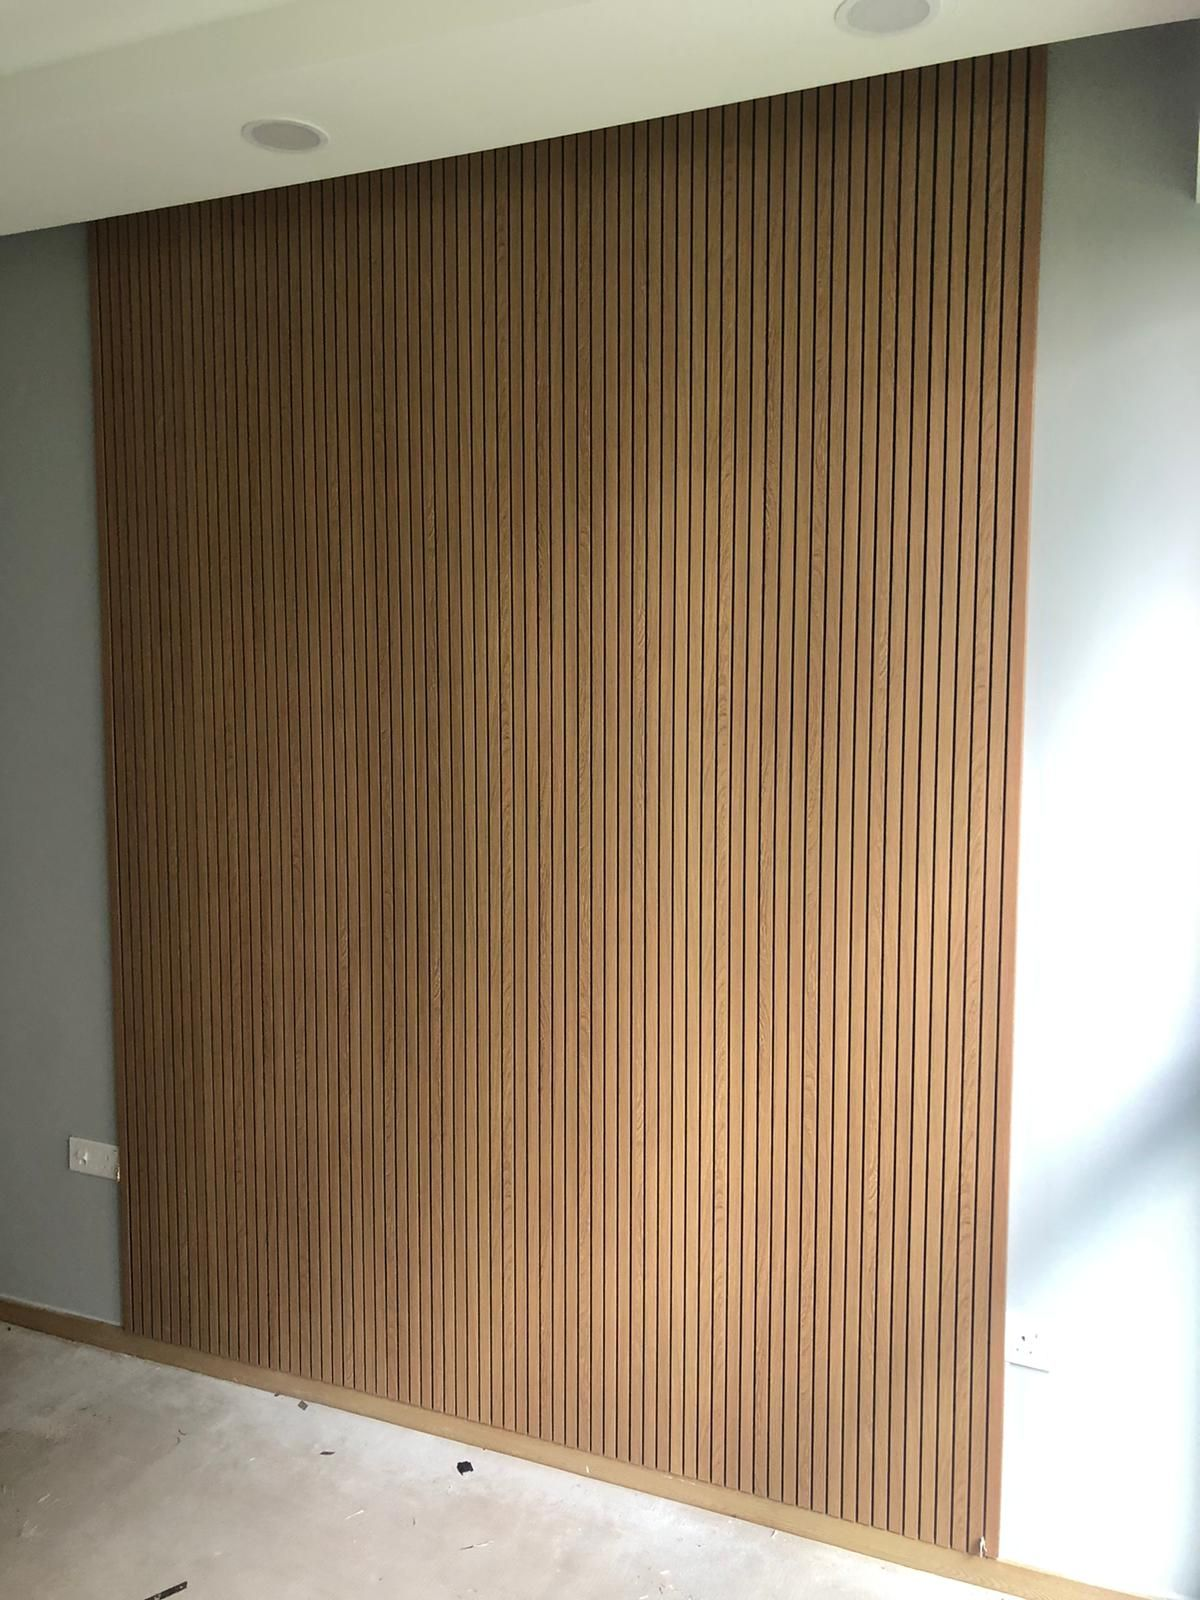 Fluted Black Line In 2021 Feature Wall Design Wall Paneling Wood Plastic Composite